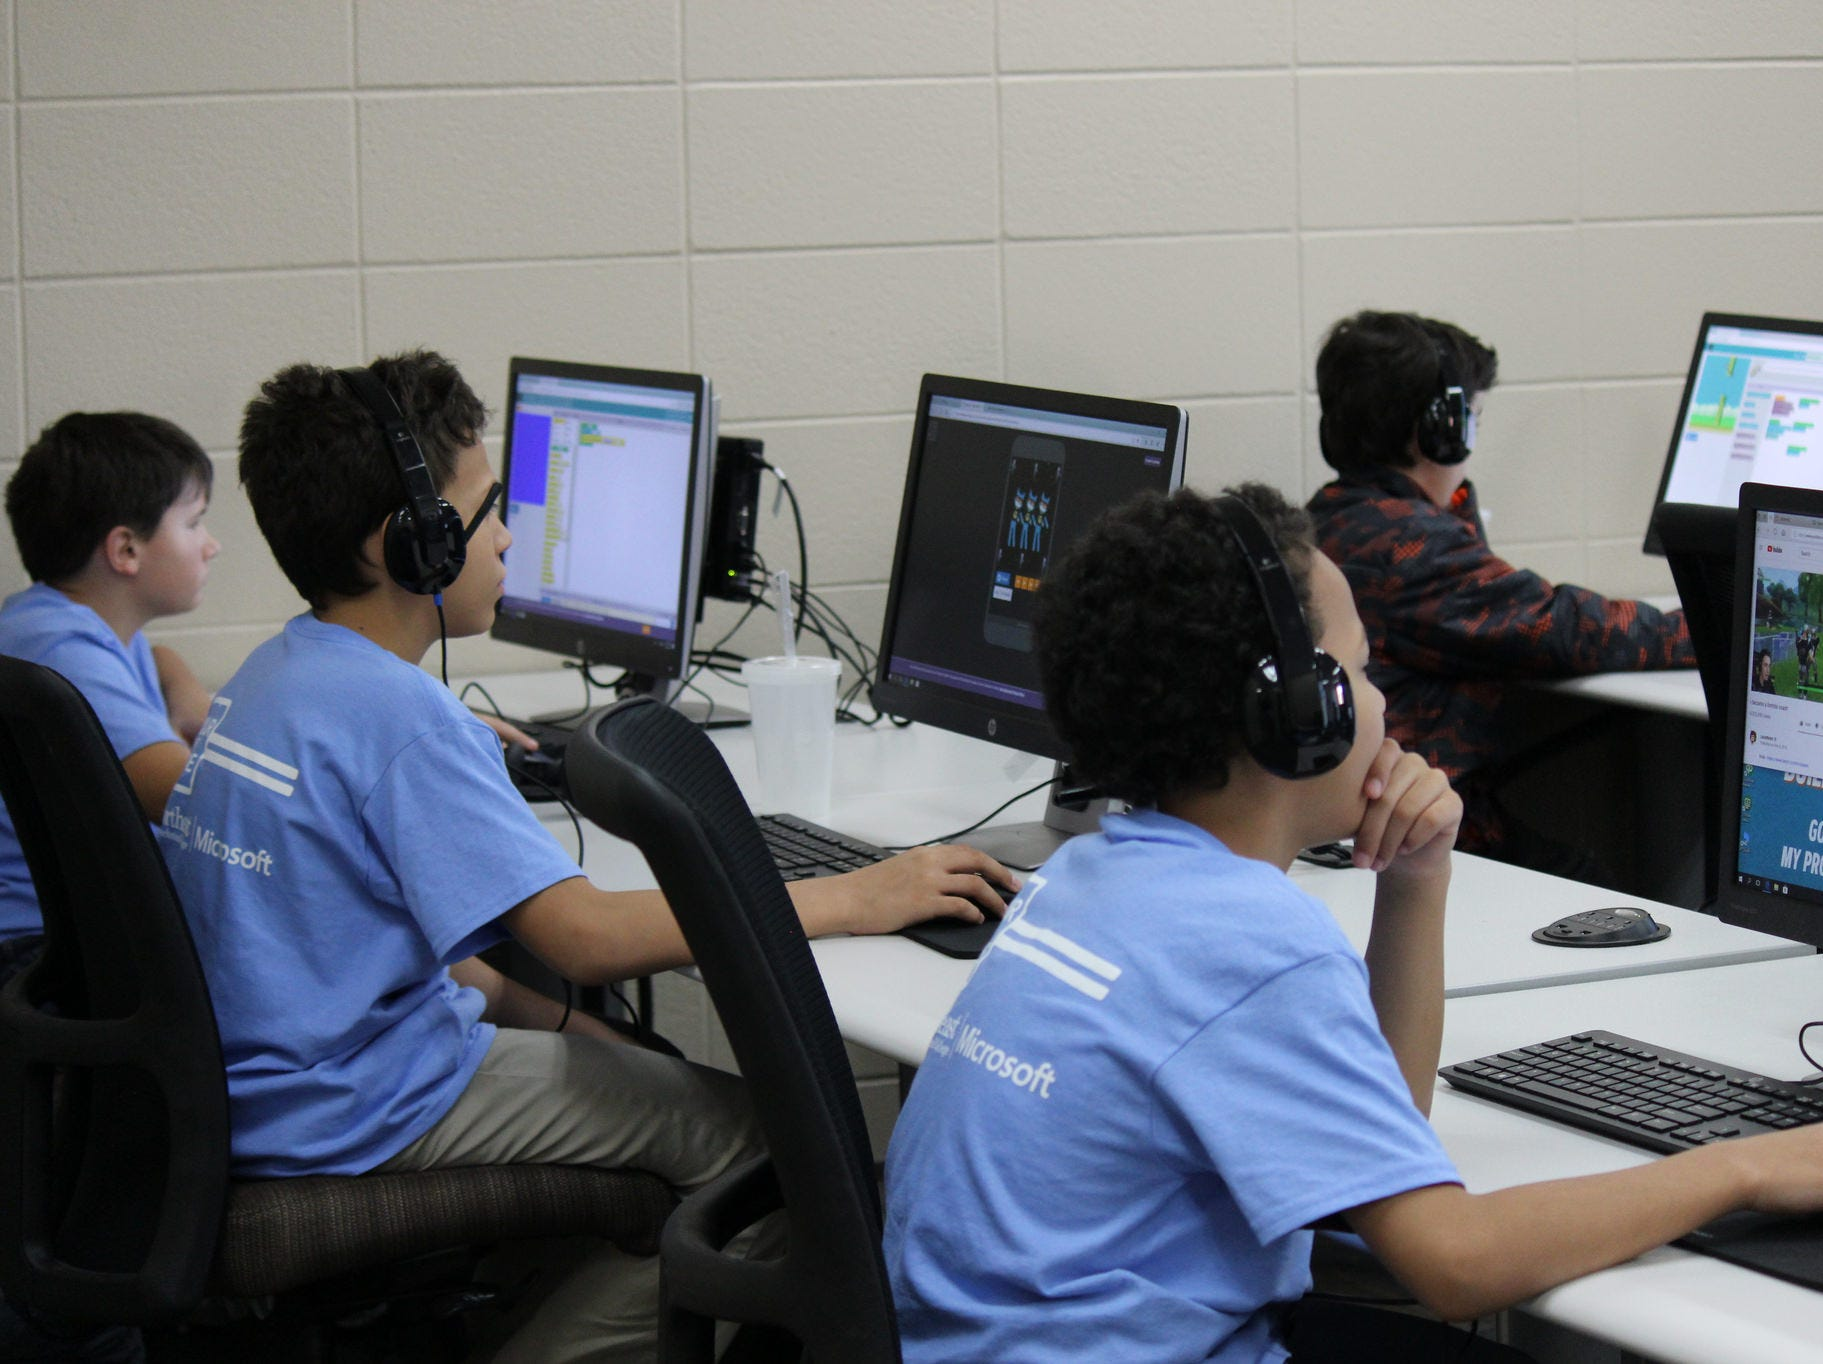 Jobs Near Me: Hour of Code provides glimpse of Information Technology careers in Wisconsin